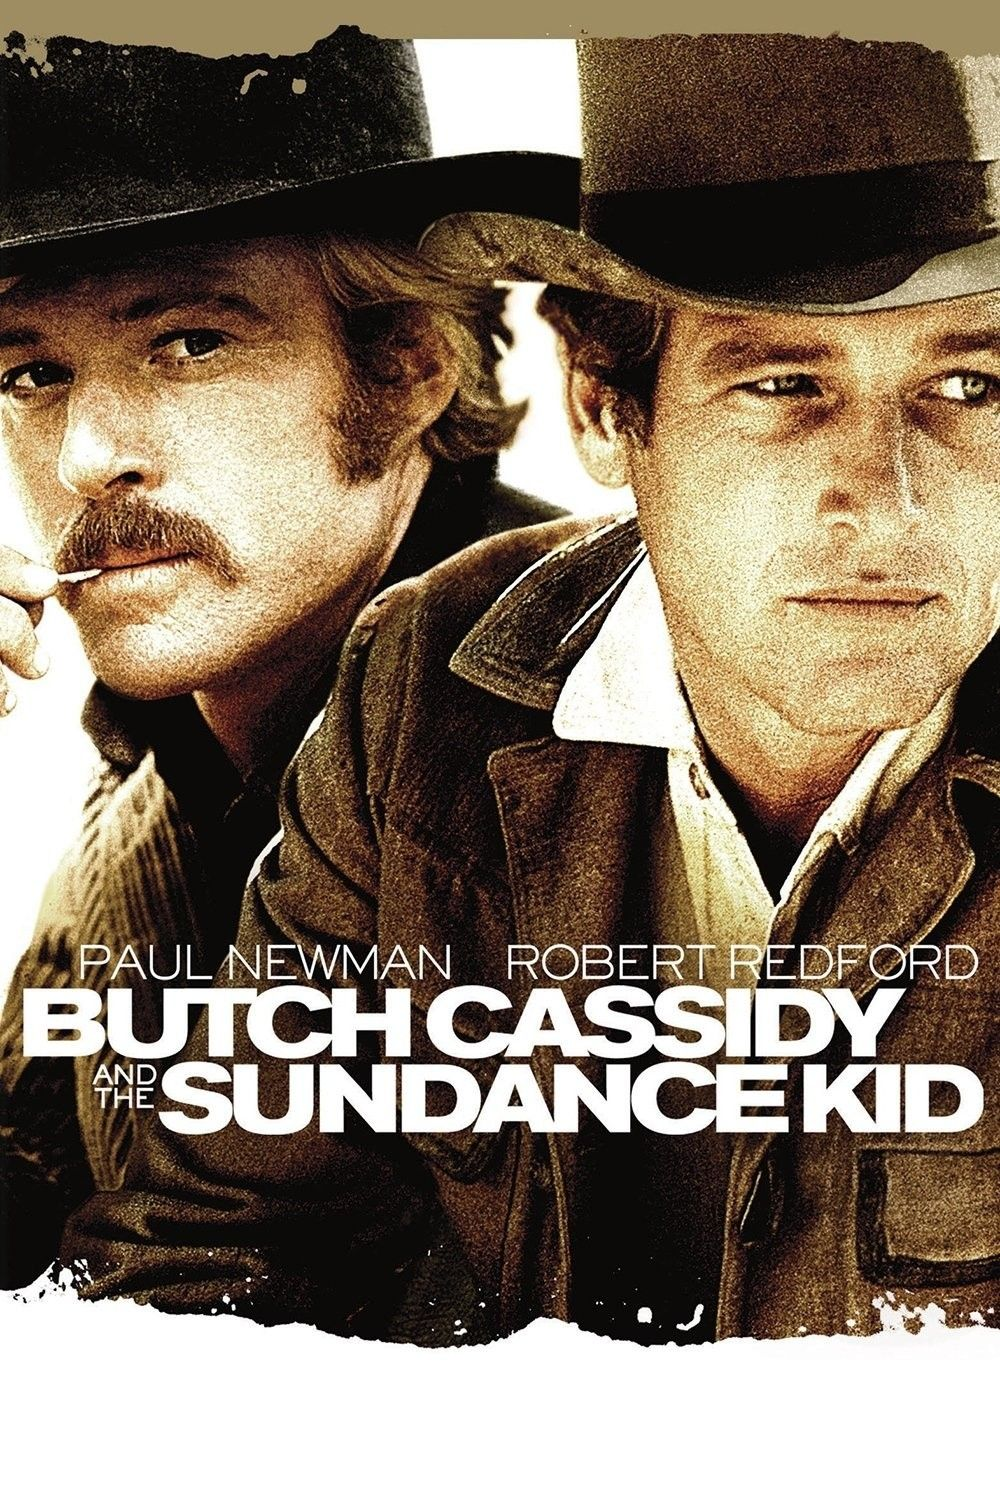 Butch Cassidy and the Sundance Kid (1969) Robert Redford is one of my favorite actors. He just doesn't make bad movies!